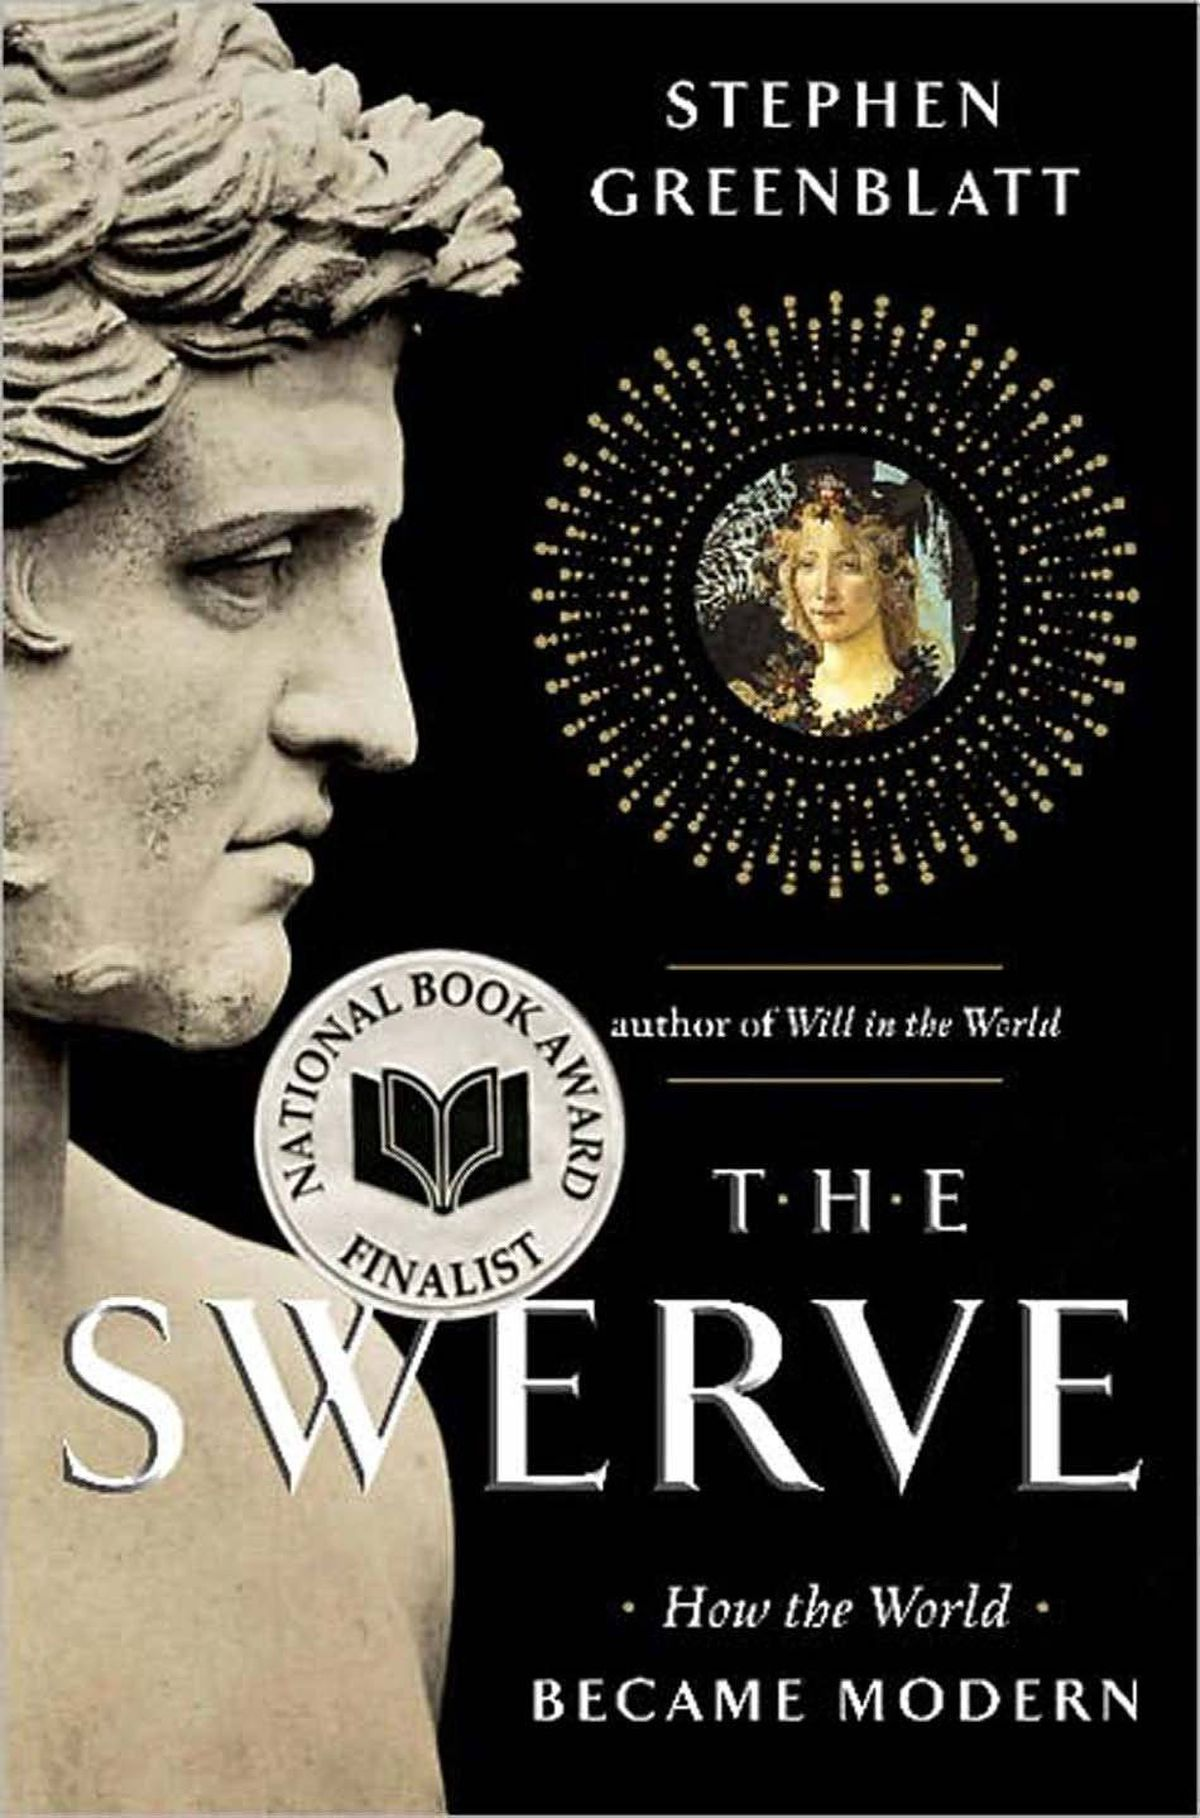 THE SWERVE How the World Became Modern By Stephen Greenblatt (Norton) Stephen Greenblatt tells us that the physical manifestations of modernism grow from a single seed, the manuscript of a lengthy poem by Lucretius, On the Nature of Things, lost in the early Christian era and unearthed and unleashed in 1417 by out-of-work papal scribe Poggio Bracciolini. What he unleashed forms this riveting, entirely clear and beautifully written narrative. – Jane Smiley